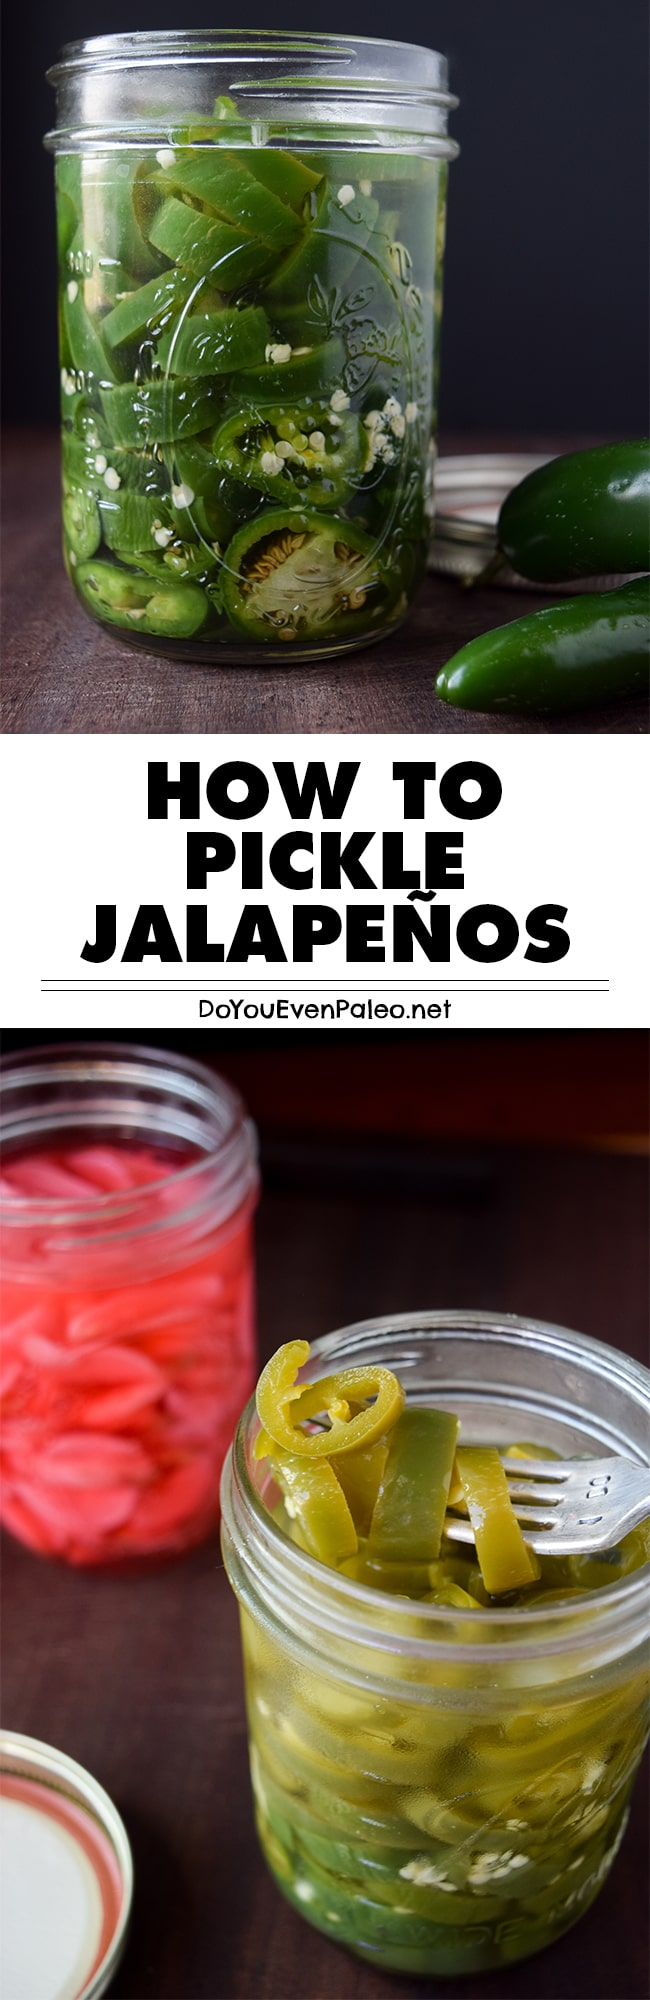 Make these pickled jalapeños to top your tacos, stuff into omelettes or add a spicy kick to salads. Quick and easy, this healthy recipe is gluten free, paleo, and Whole30 friendly! | DoYouEvenPaleo.net #paleo #glutenfree #doyouevenpaleo